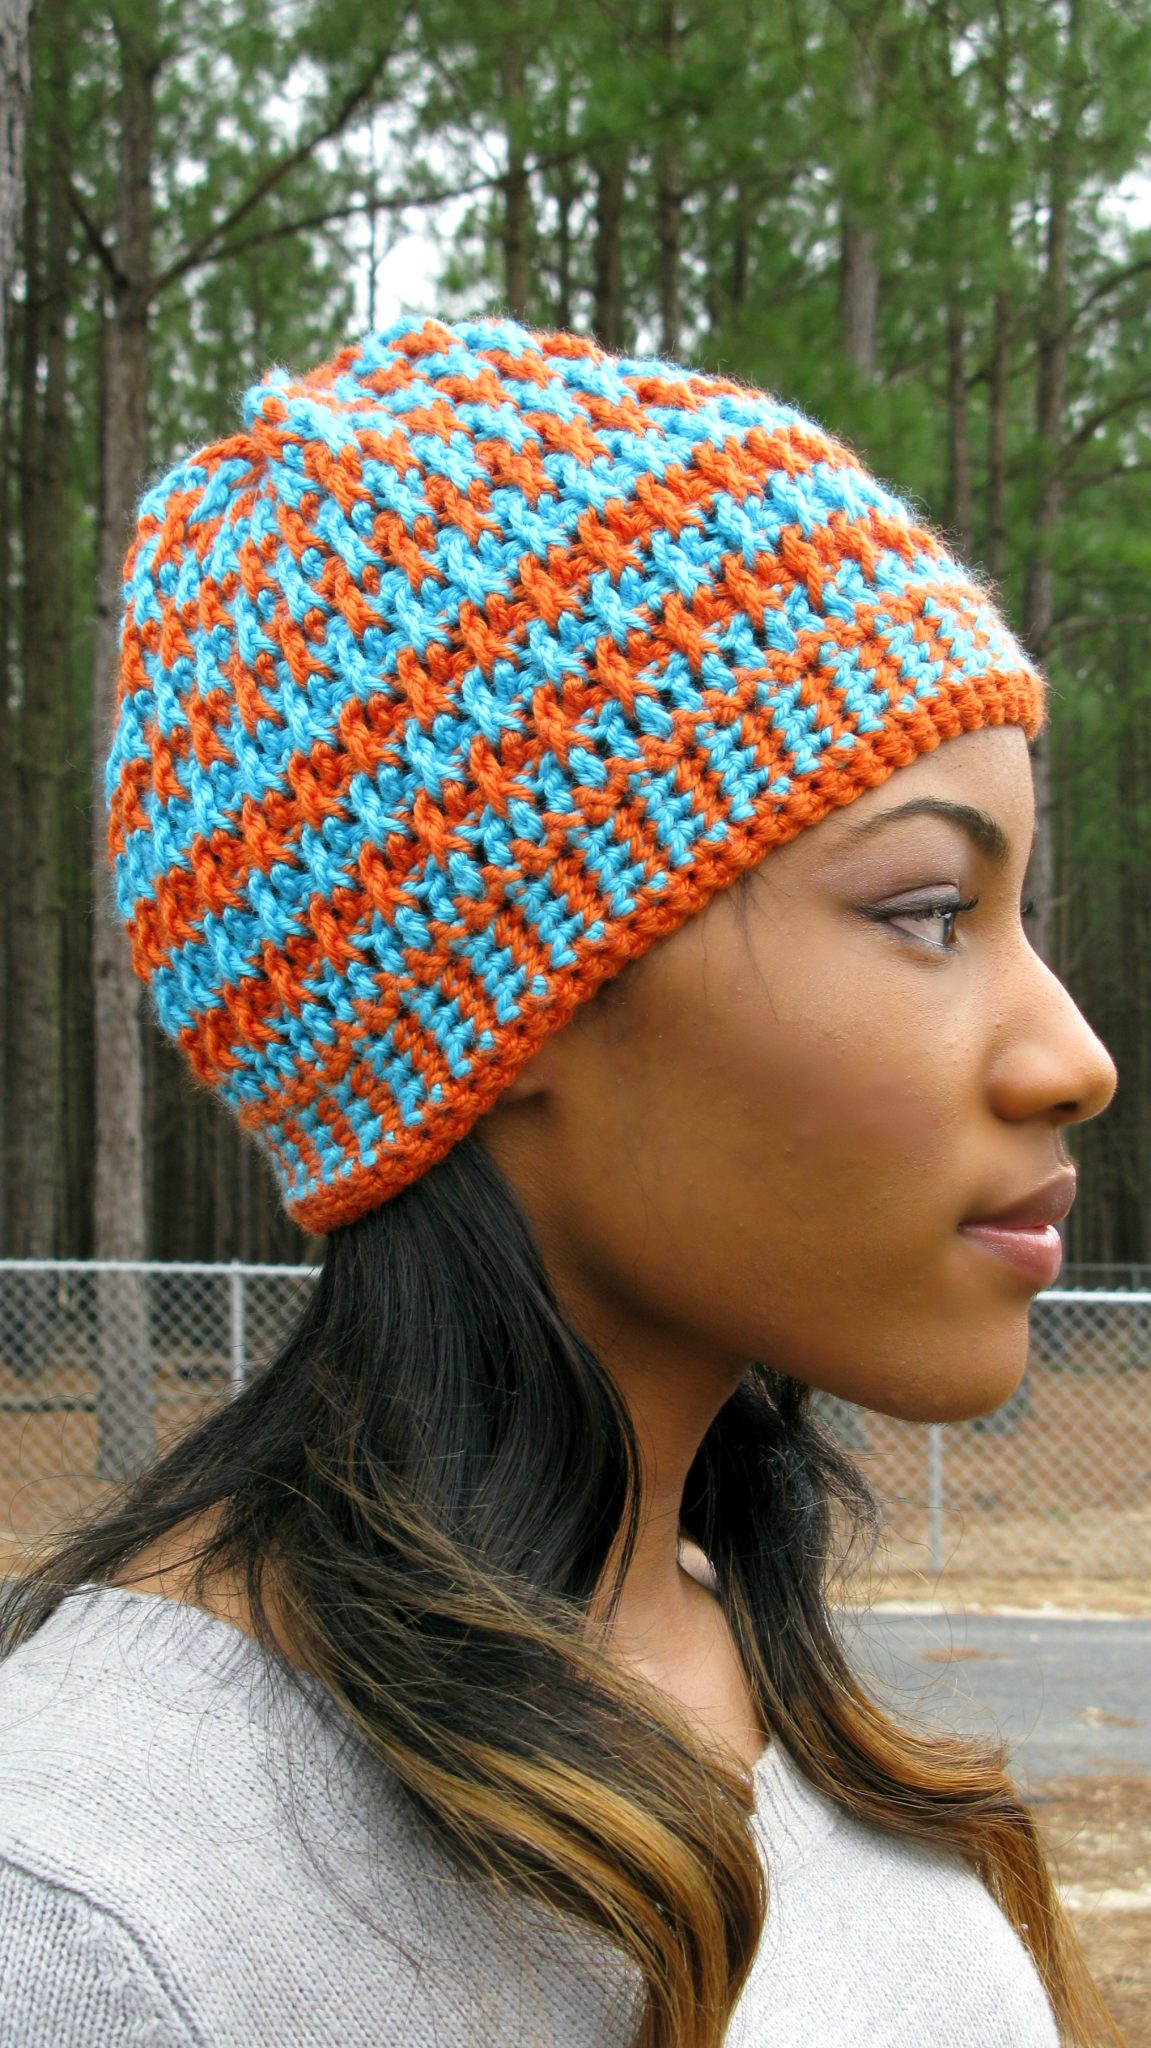 Free Crochet Pattern For Deerstalker Hat : Morning Frost - A Free Crochet Hat Pattern - ELK Studio ...